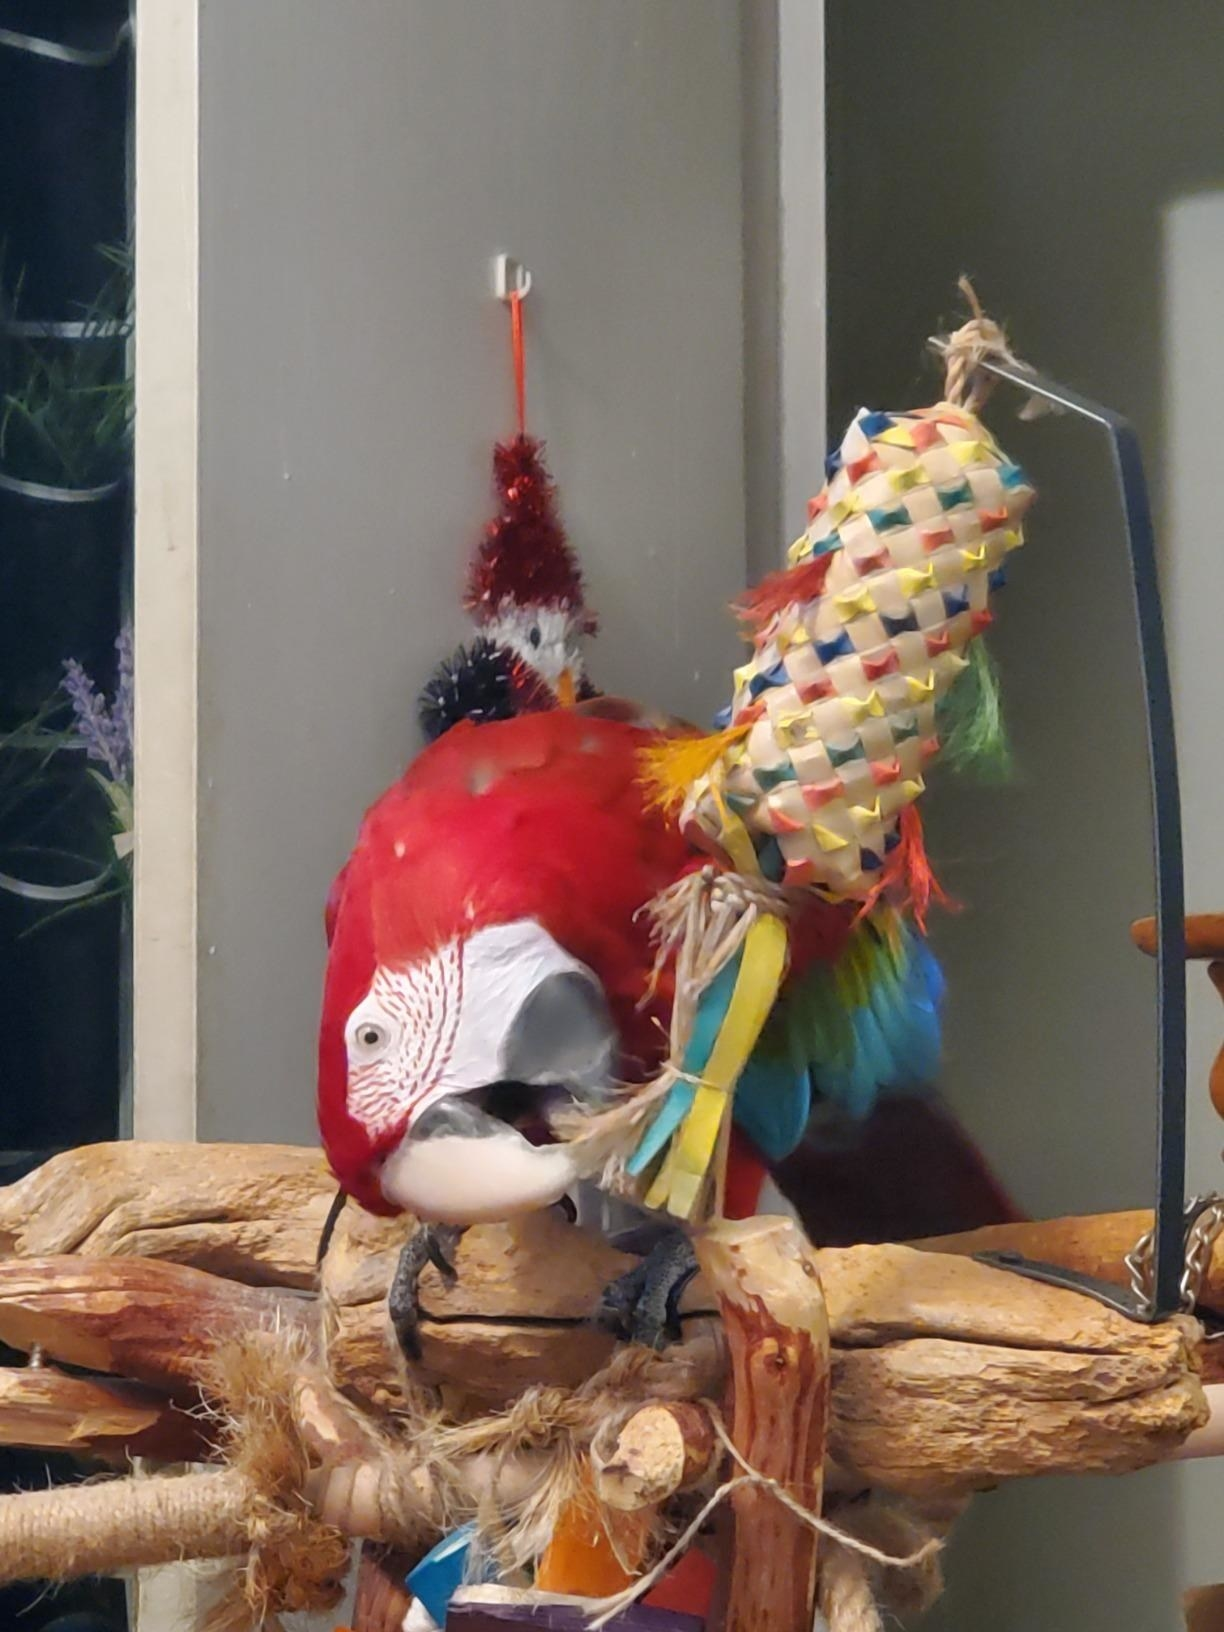 Reviewer's red macaw playing with the colorful strings at the bottom